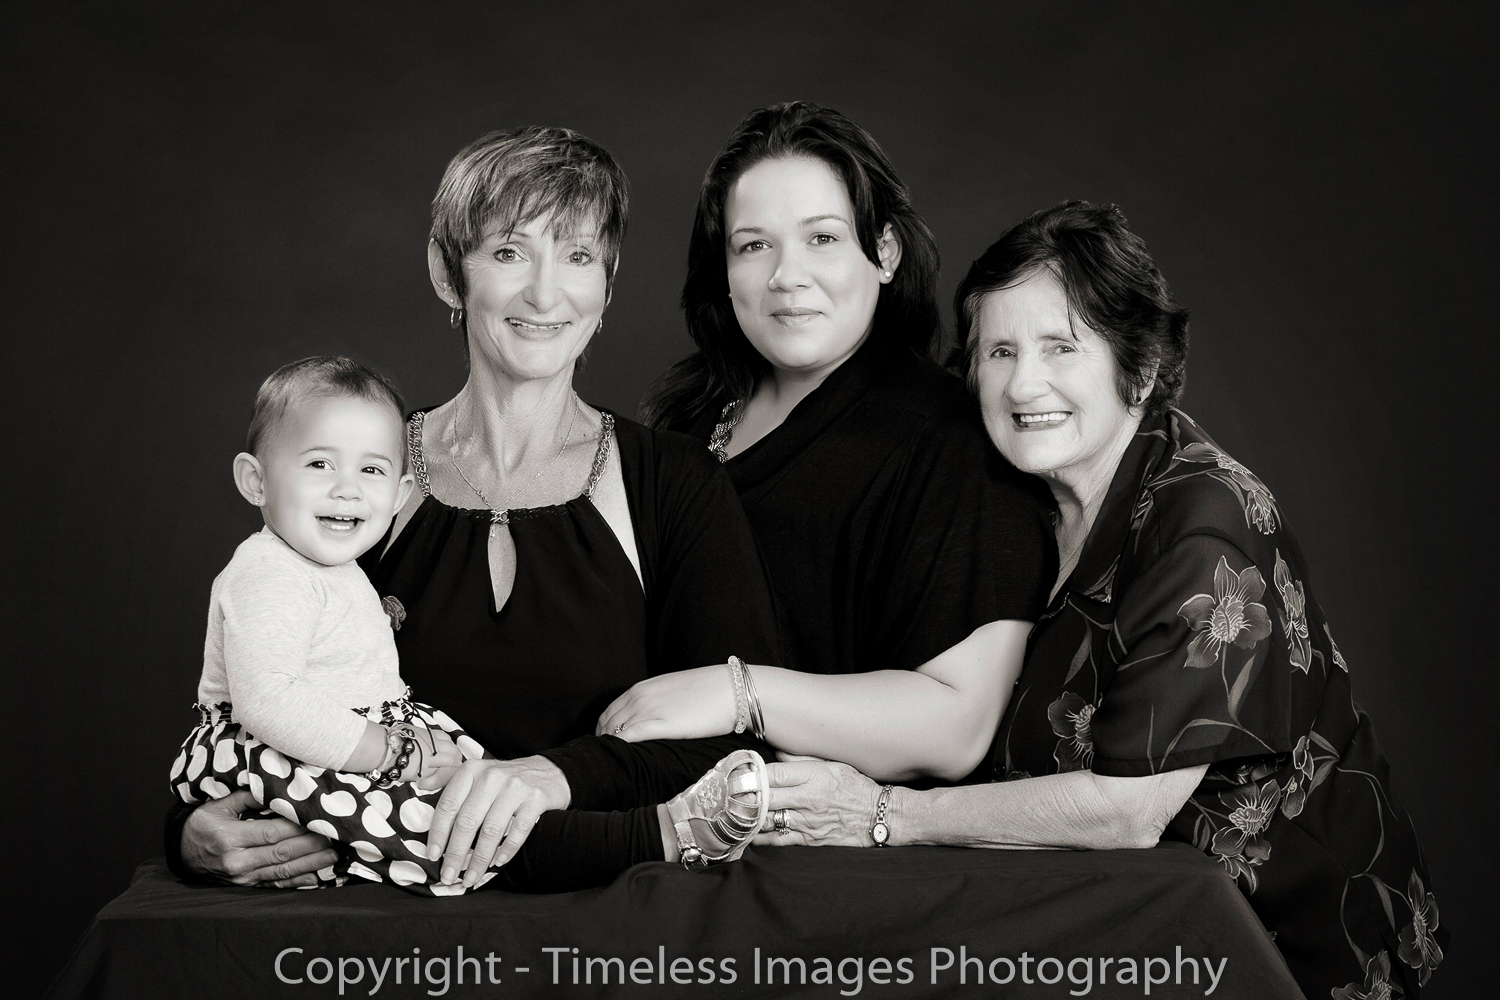 Four generations photoshoot